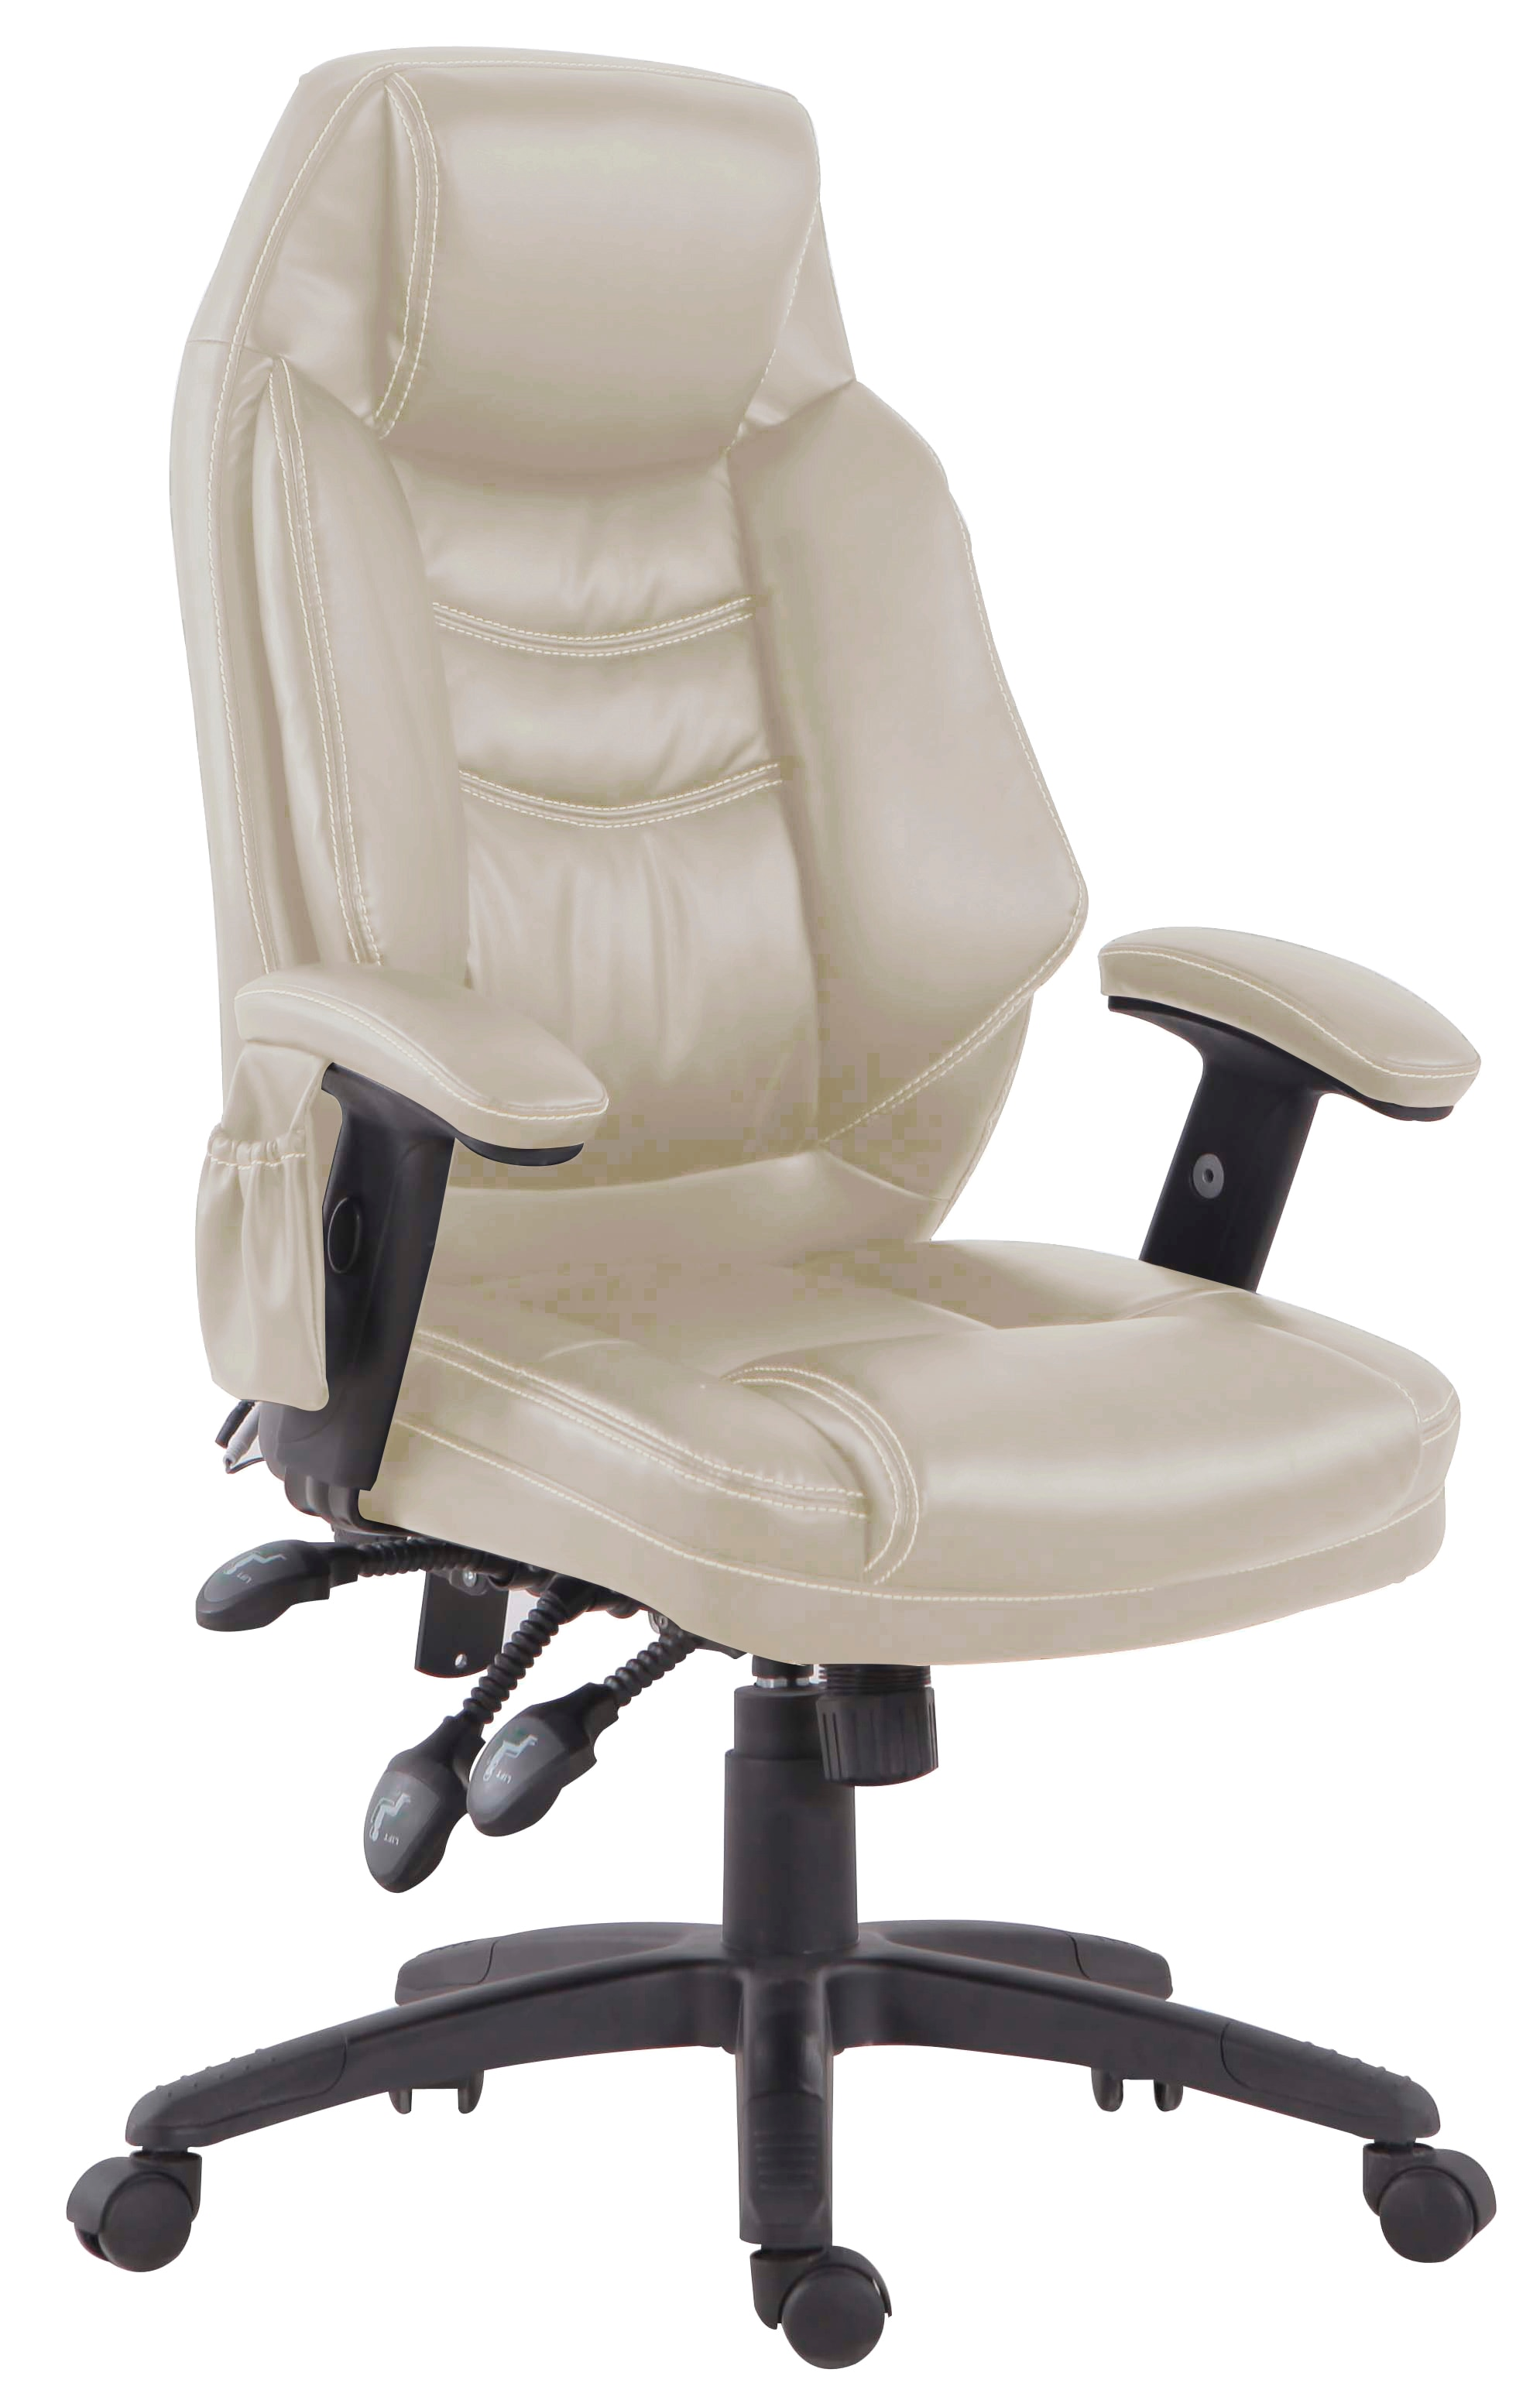 Ergonomic Chair Tony Little Destress Ergonomic Office Chair With Massage And Heat